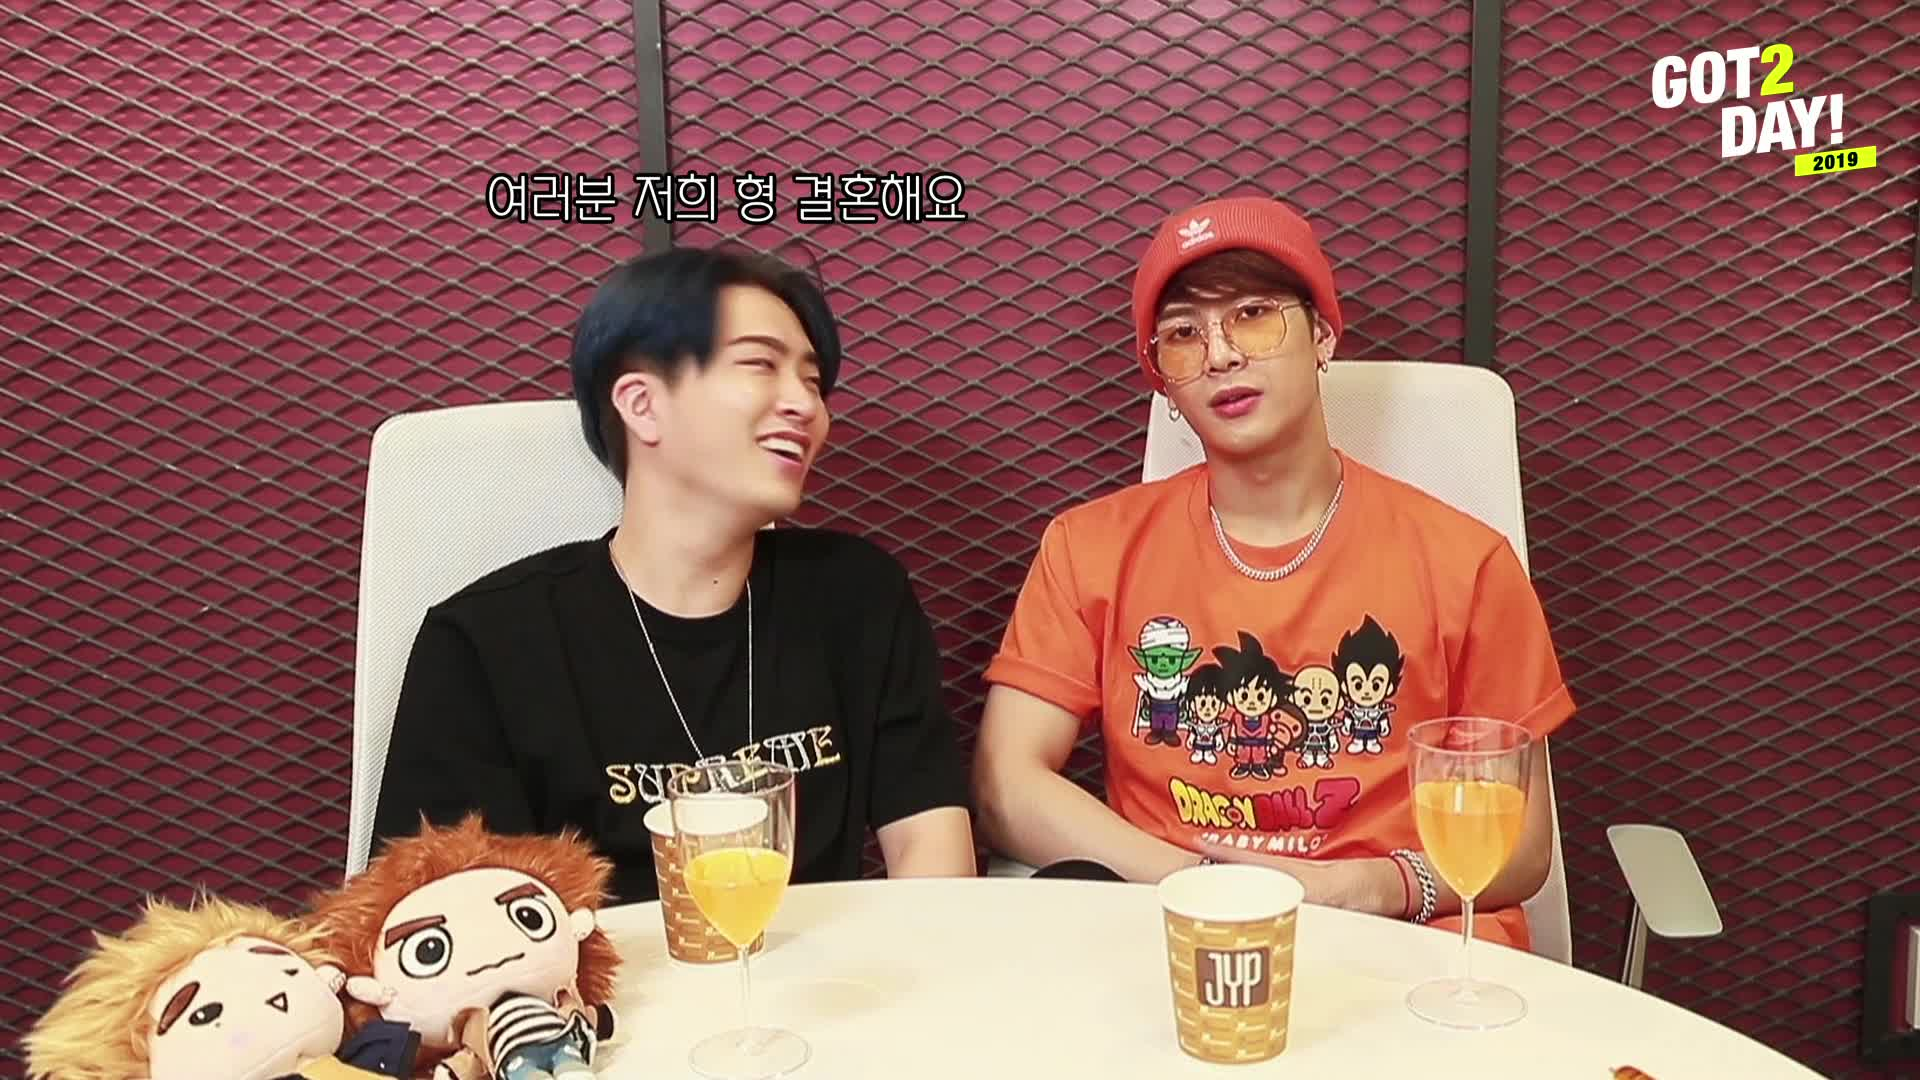 [GOT2DAY 2019] 01. Jackson & Youngjae